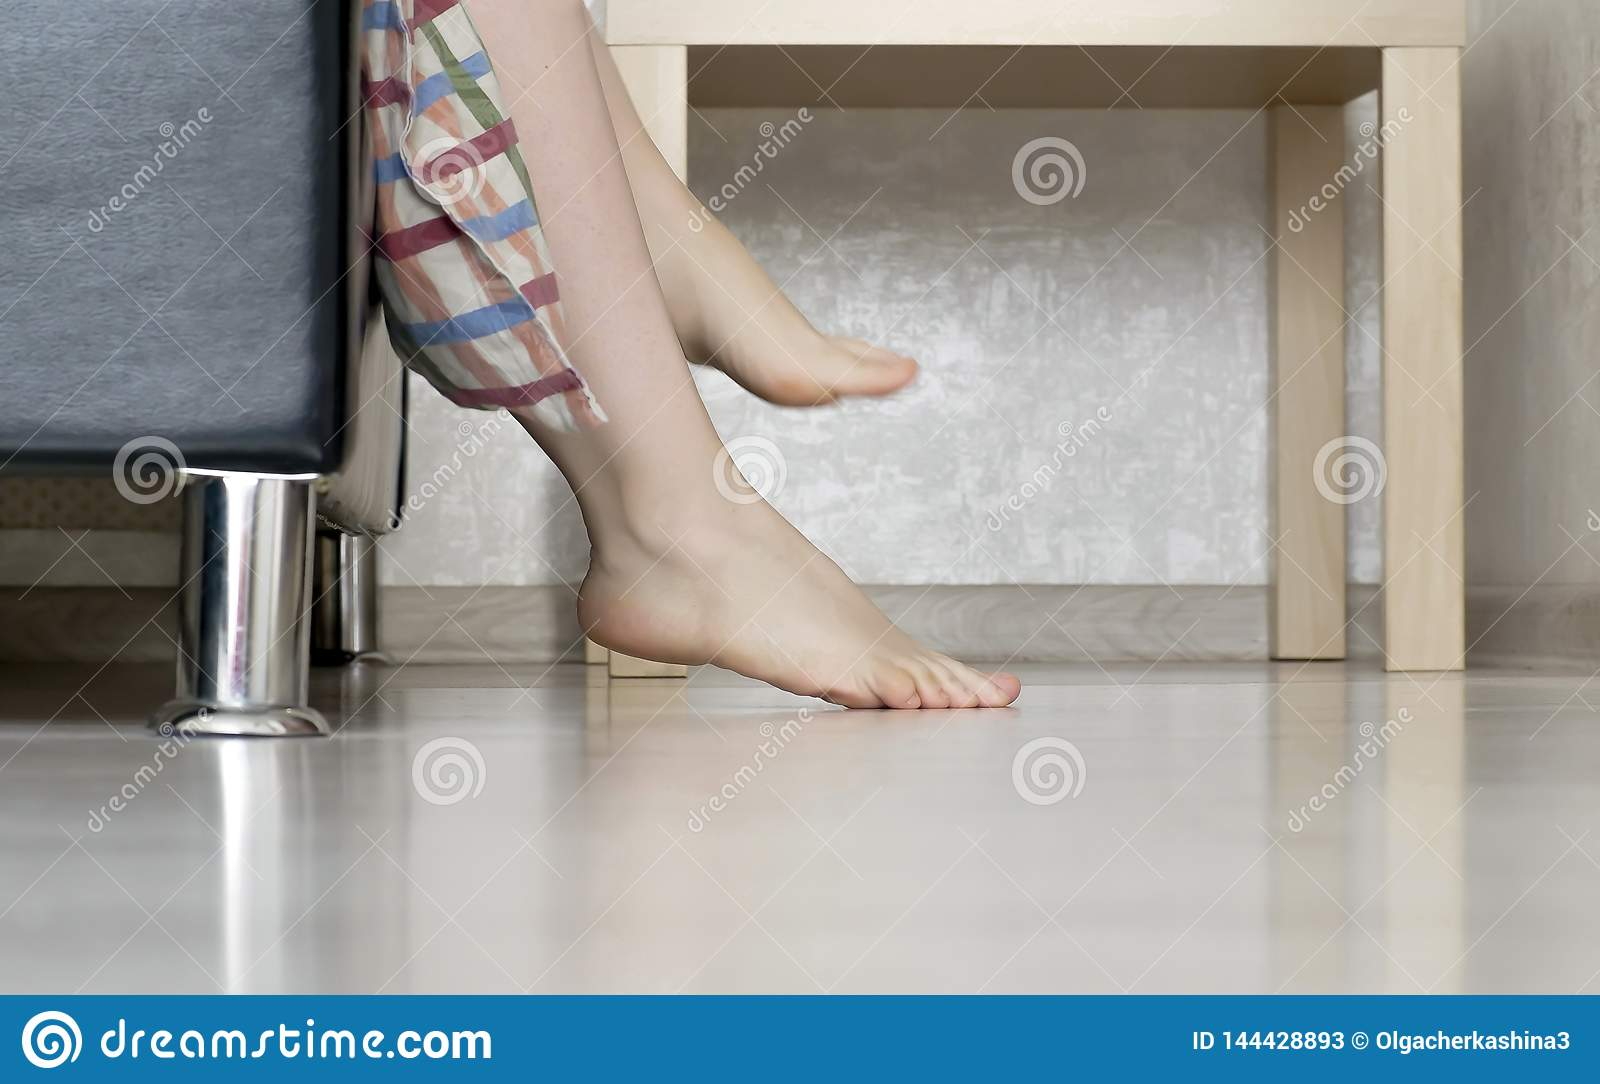 Woman pulls her legs out of bed